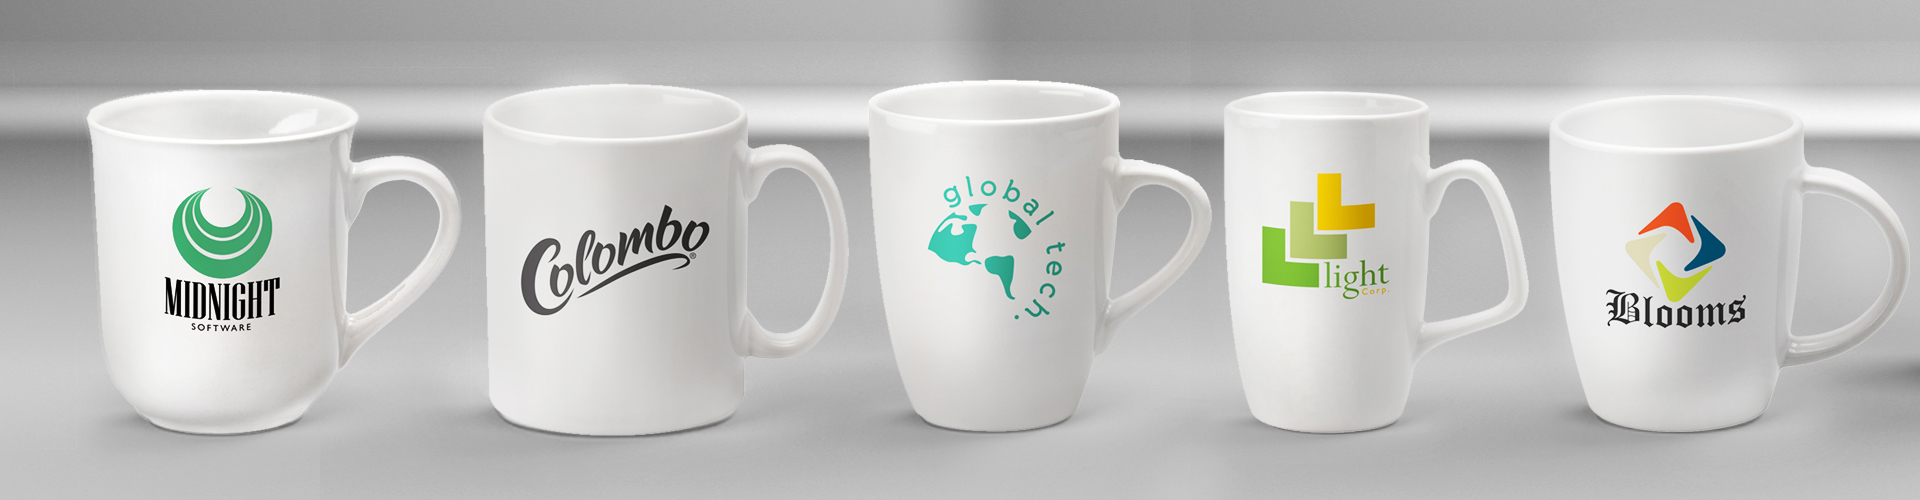 Terrific Mugs, Printed Mugs, Promotional Mugs